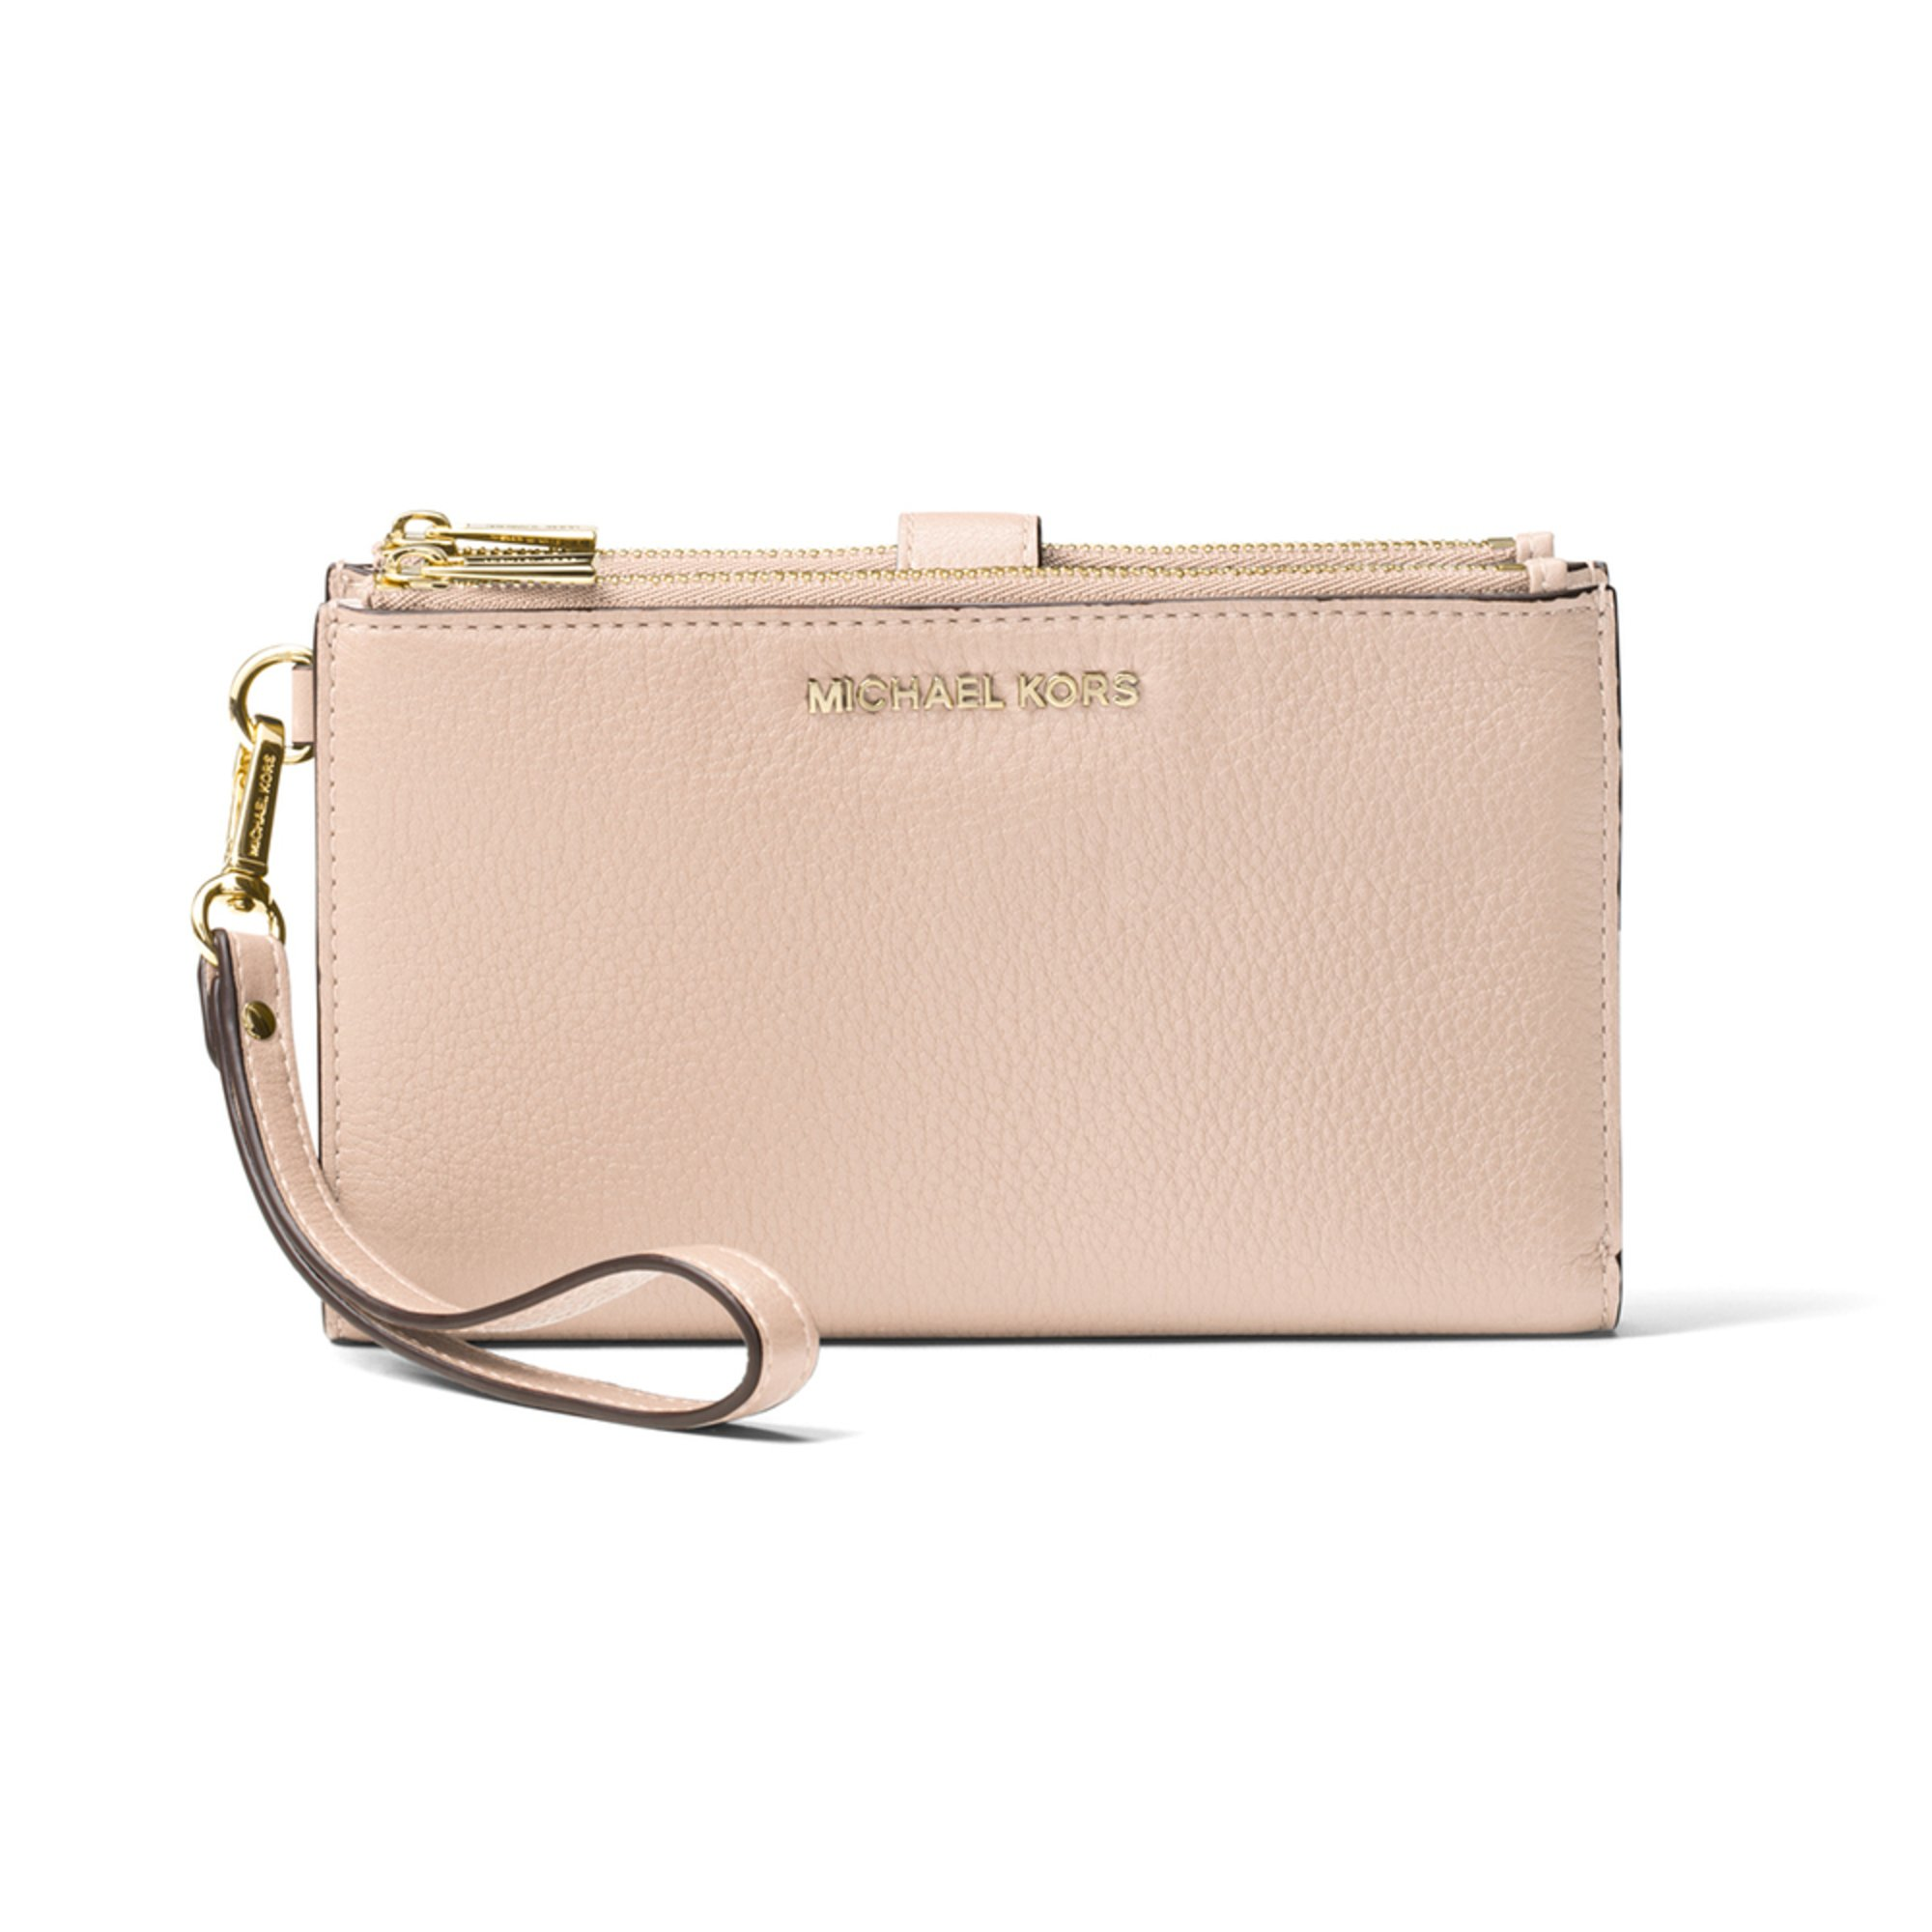 44290f16fad62 Michael Kors Adele Double Zip Wristlet 7 Plus Soft Pink